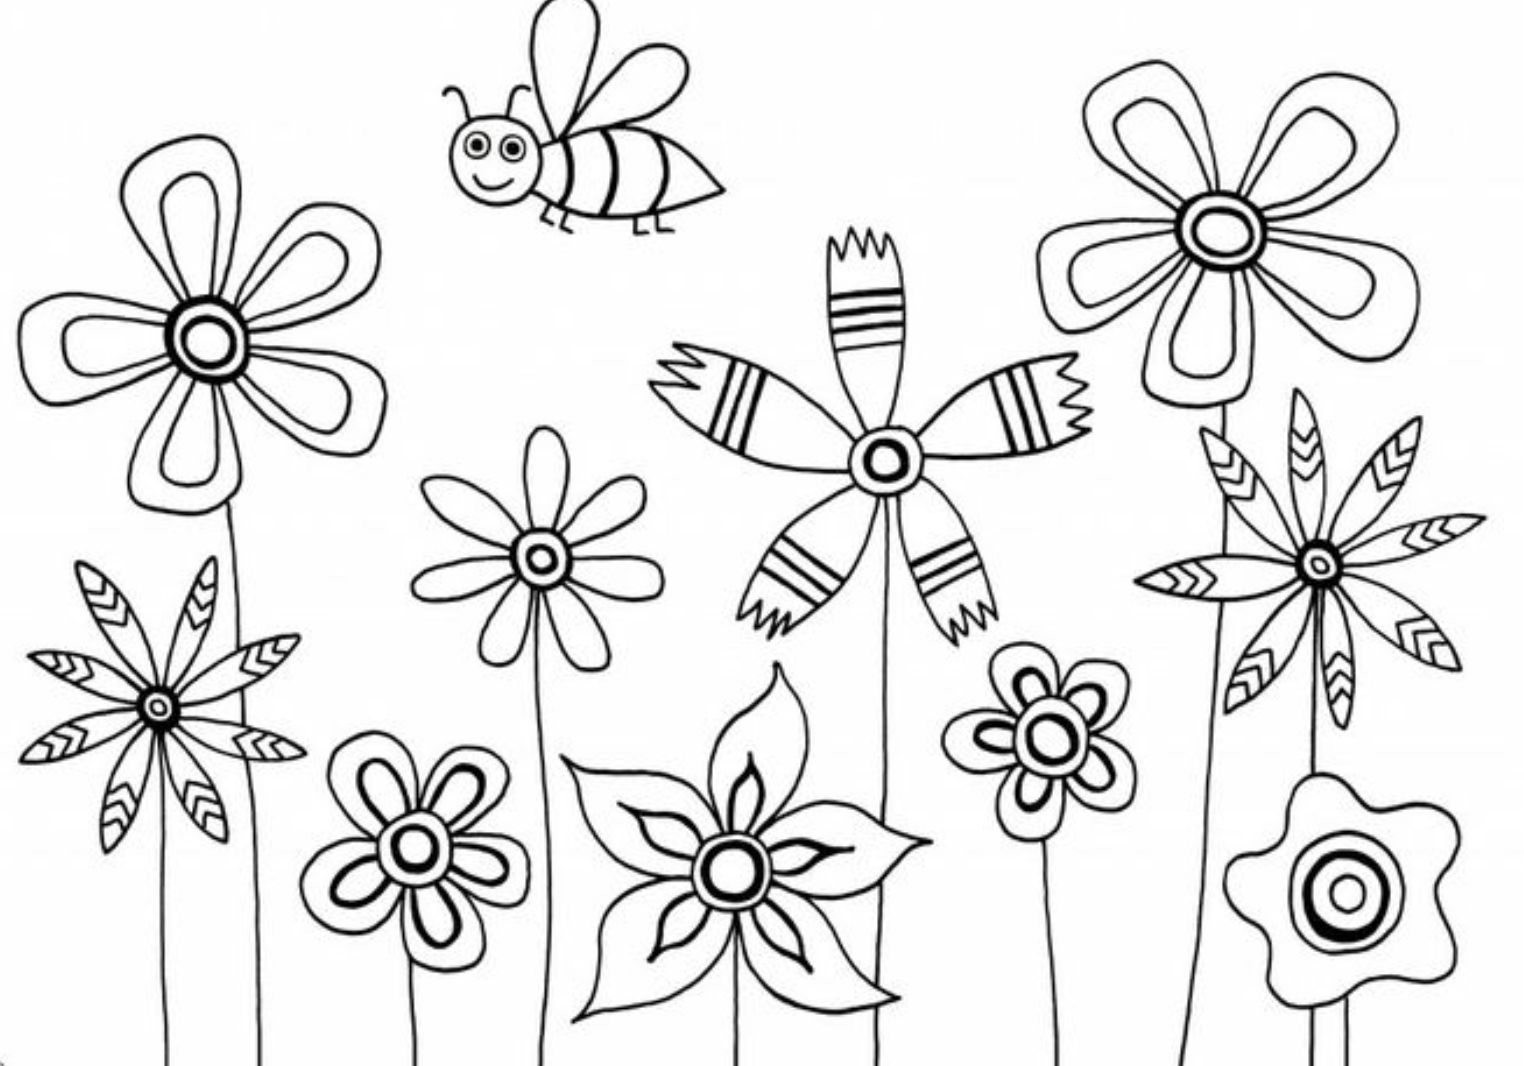 Coloring Pages Of Flowers For Kids  Flowers Coloring Pages For Kids